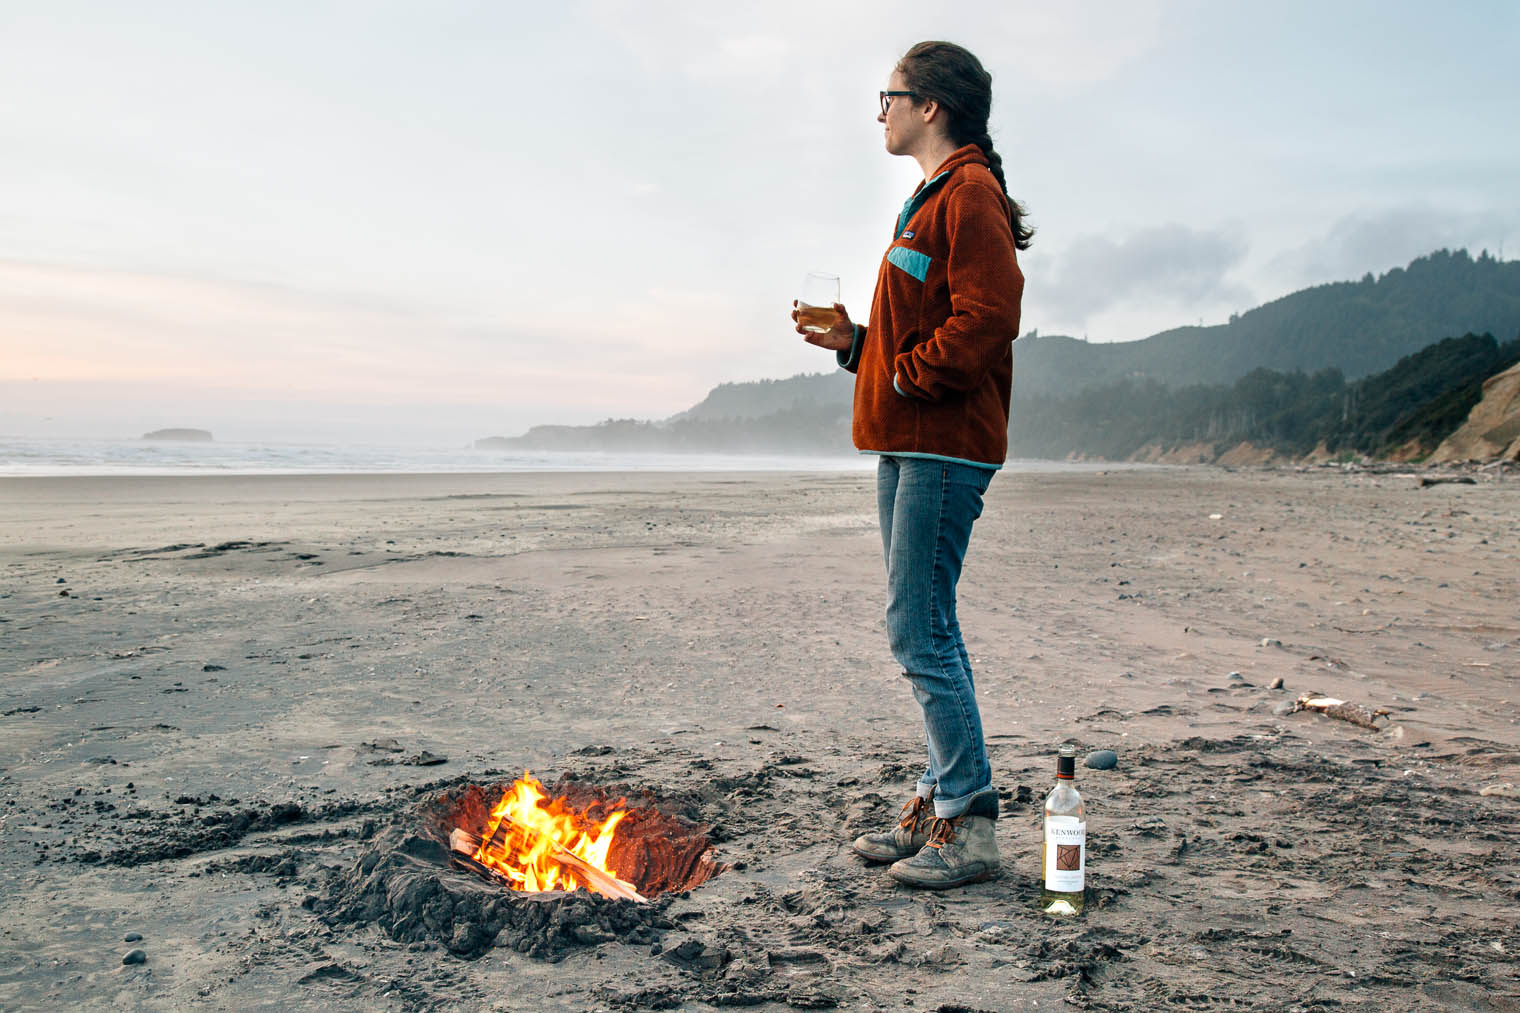 Megan standing in front of a bonfire on the beach along the Oregon Coast